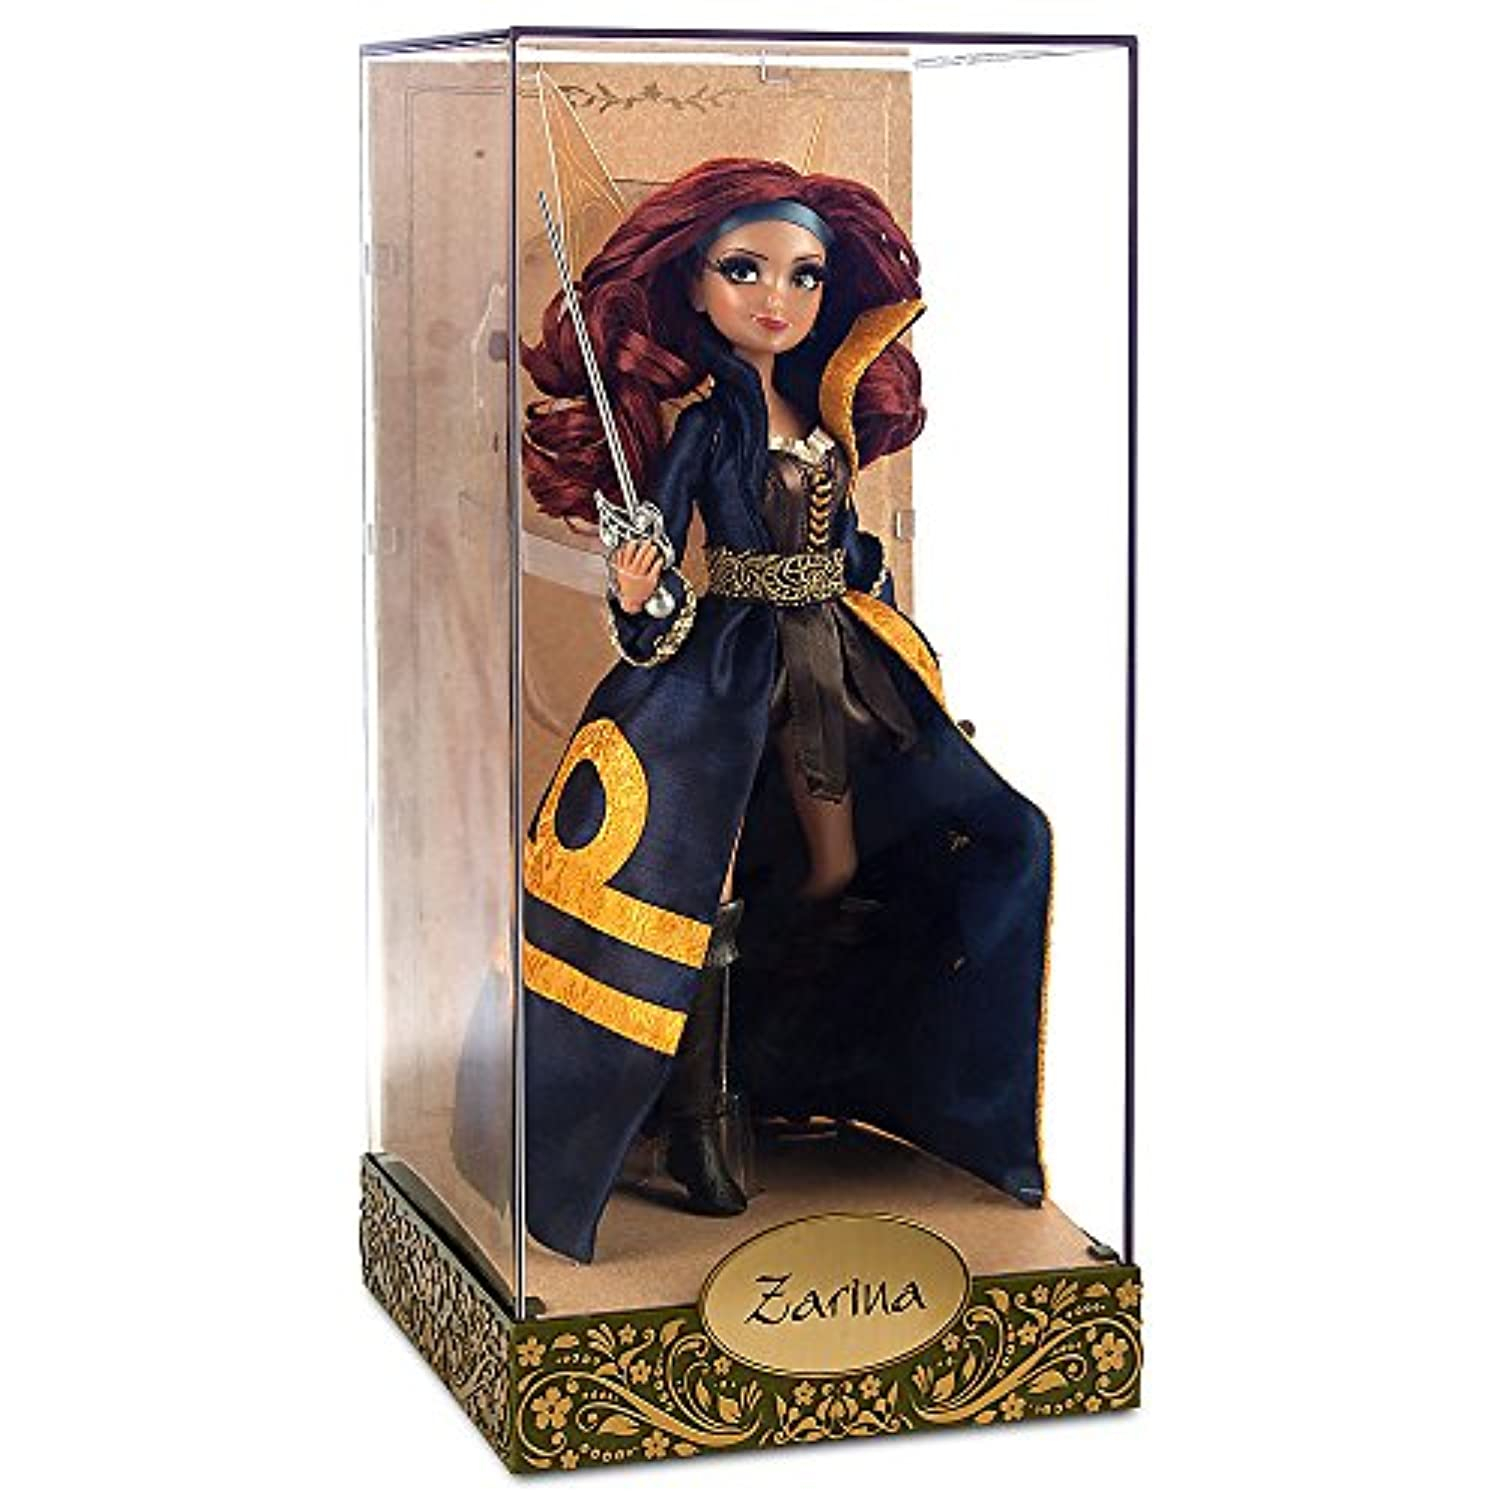 DISNEY STORE LIMITED EDITION DISNEY FAIRIES ZARINA PIRATE FAIRY DESIGNER DOLL by Disney